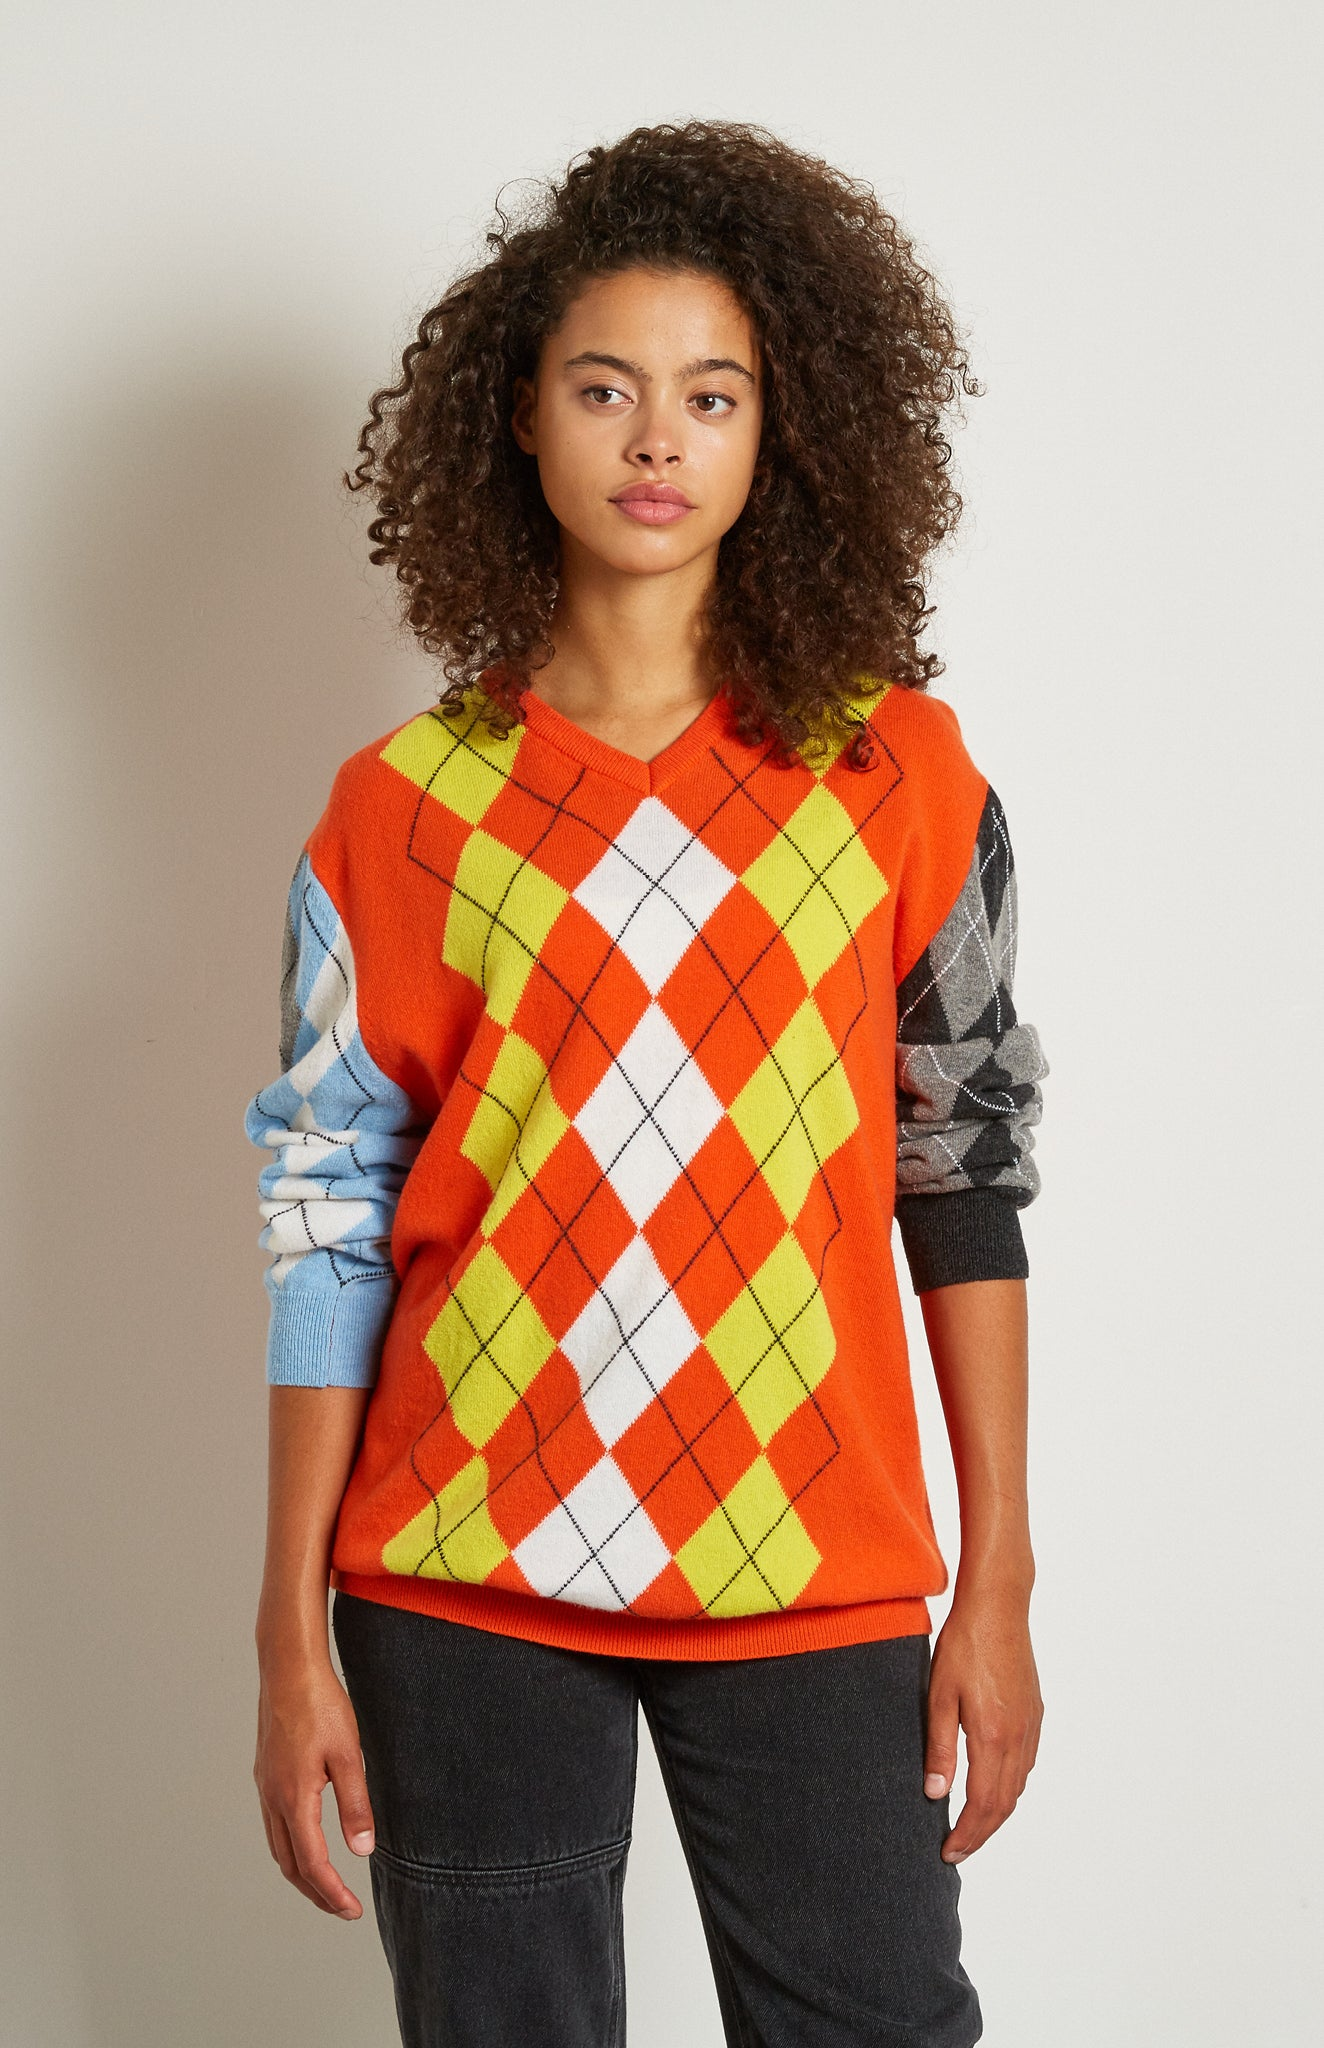 Pringle Reissued Unisex Patchwork Argyle Jumper on female model